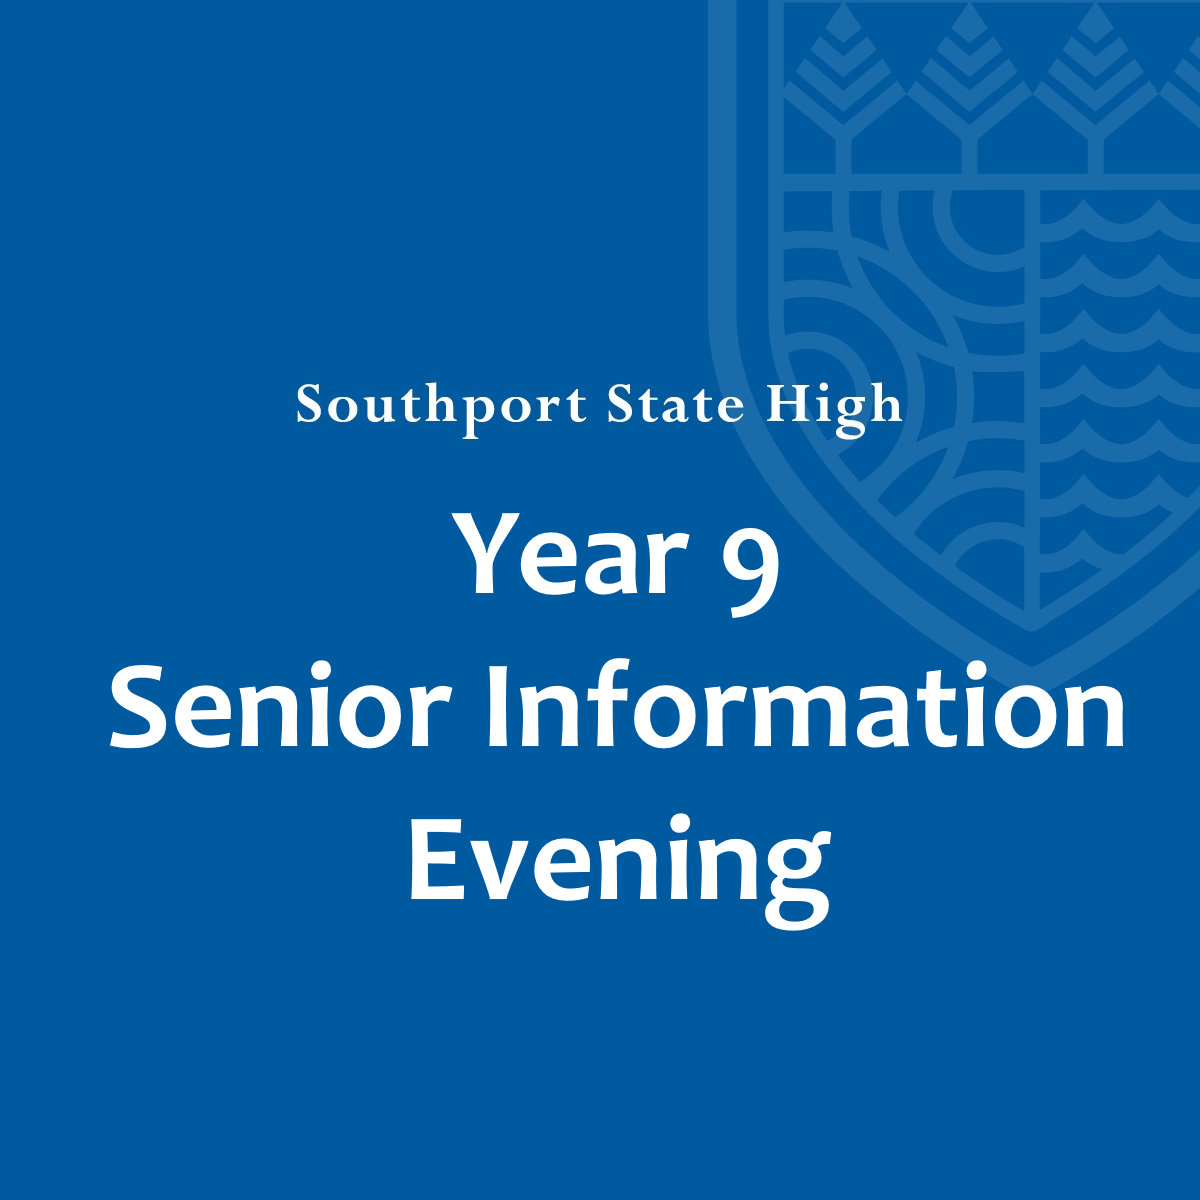 Year 9 Senior Information Evening